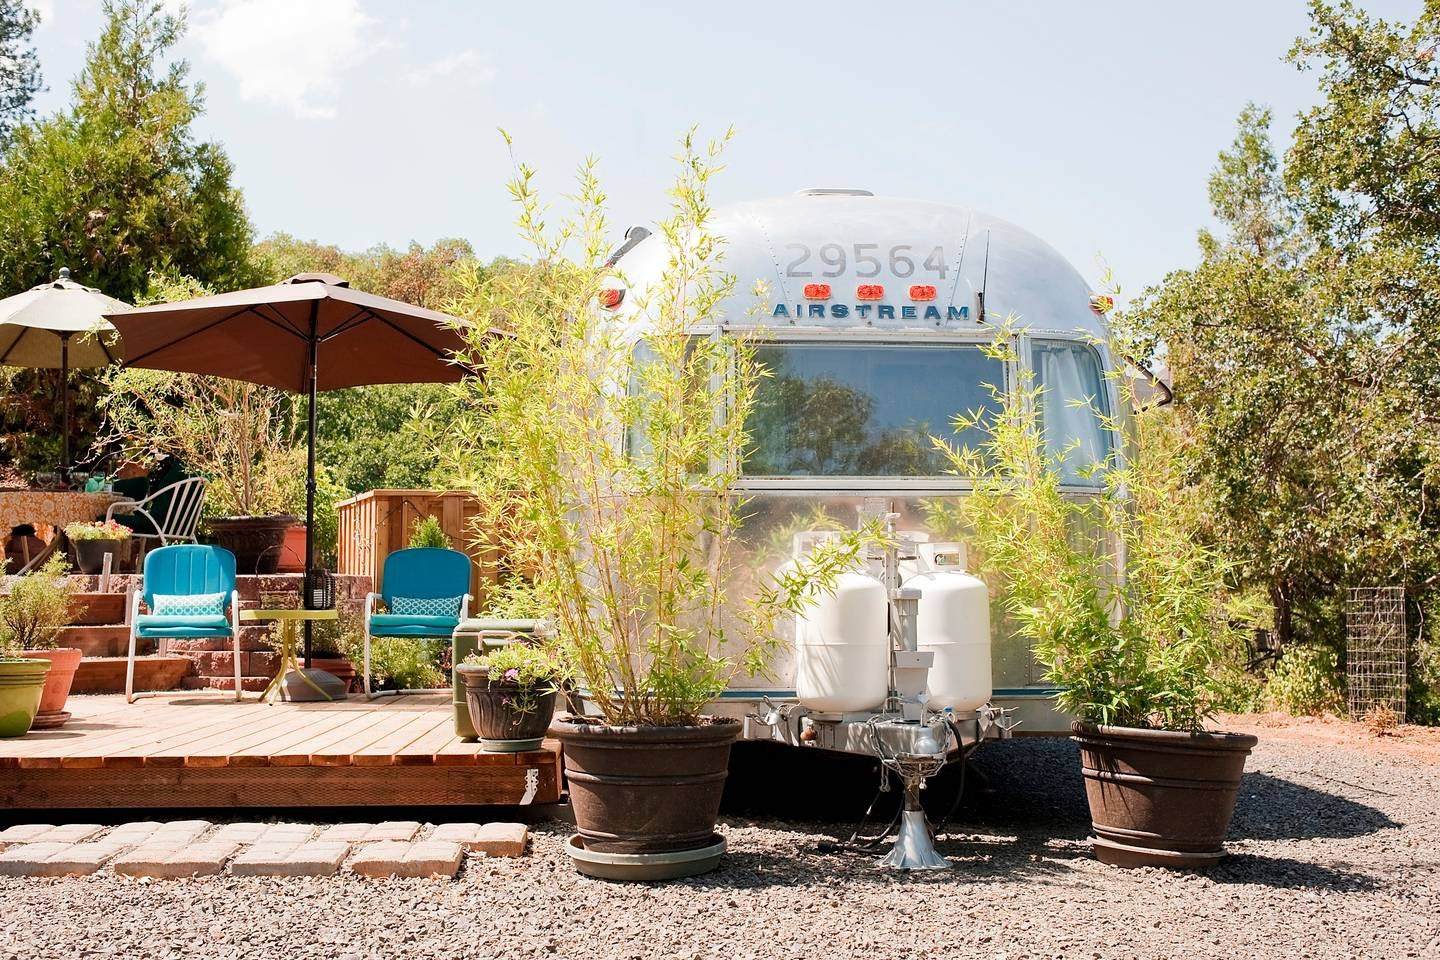 10 Retro Airstreams You Can Rent On Airbnb | Domino